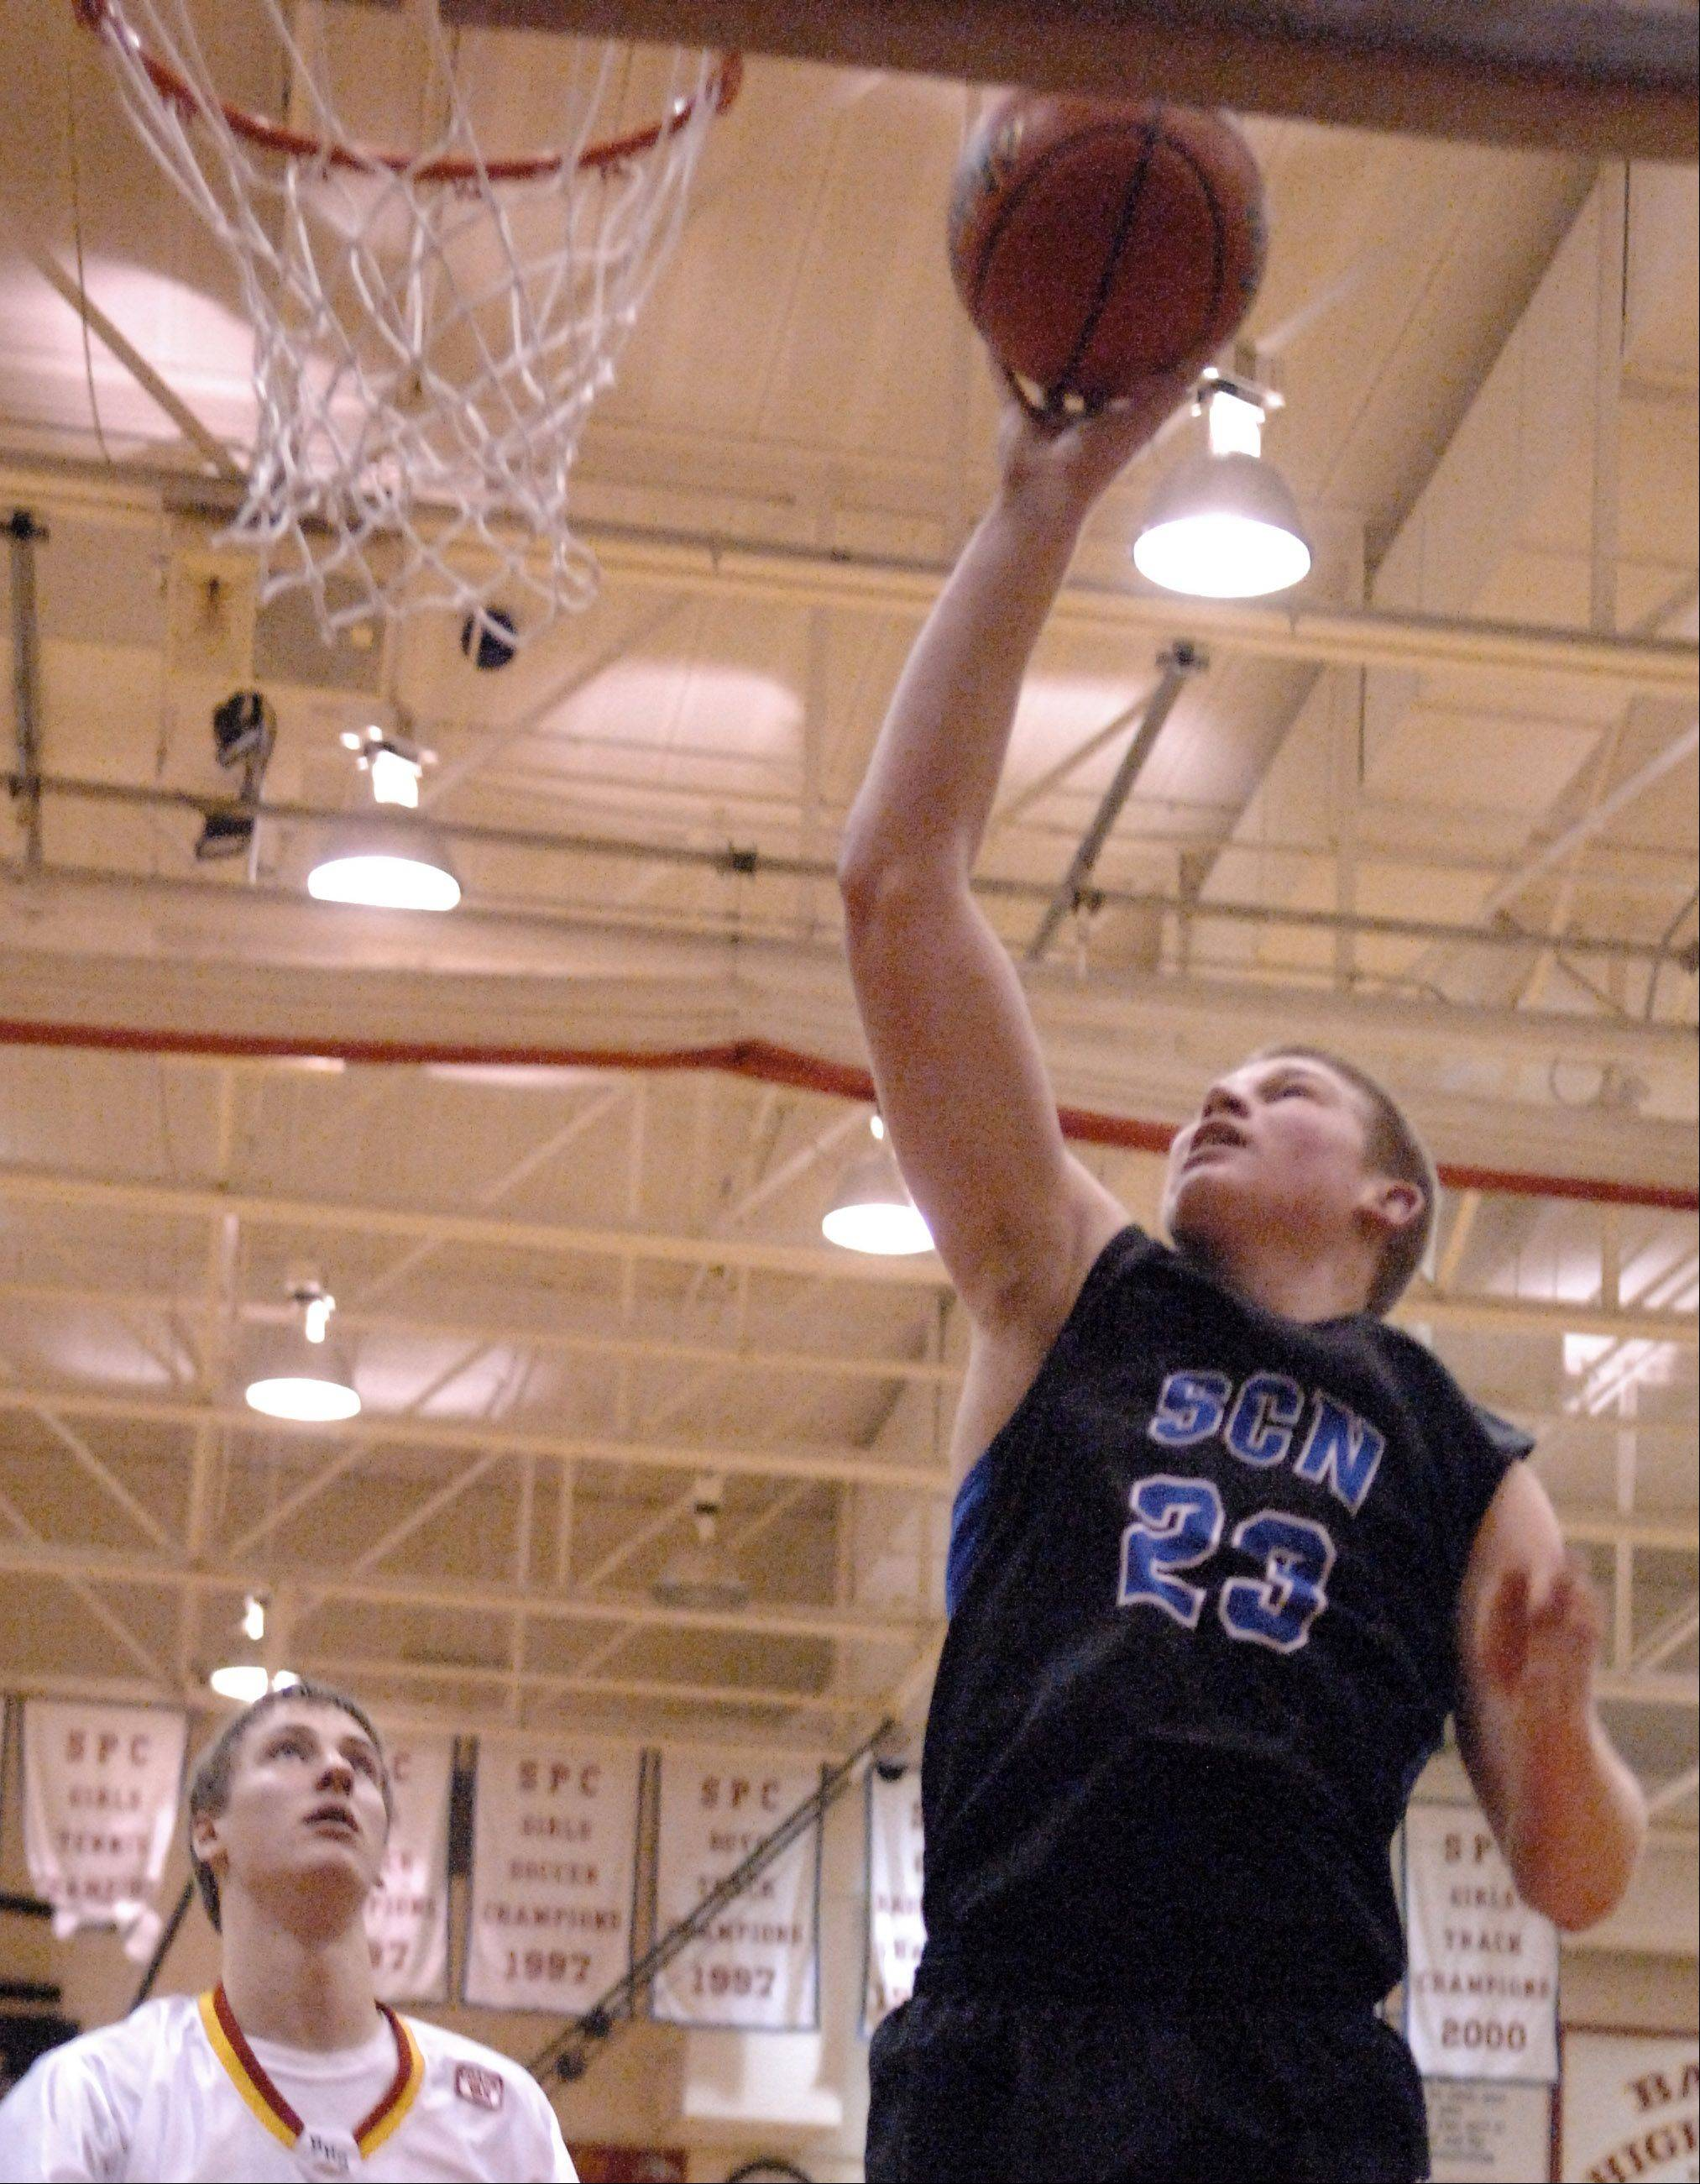 Images from the St. Charles North vs. Batavia boys basketball game Thursday, December 13, 2012.